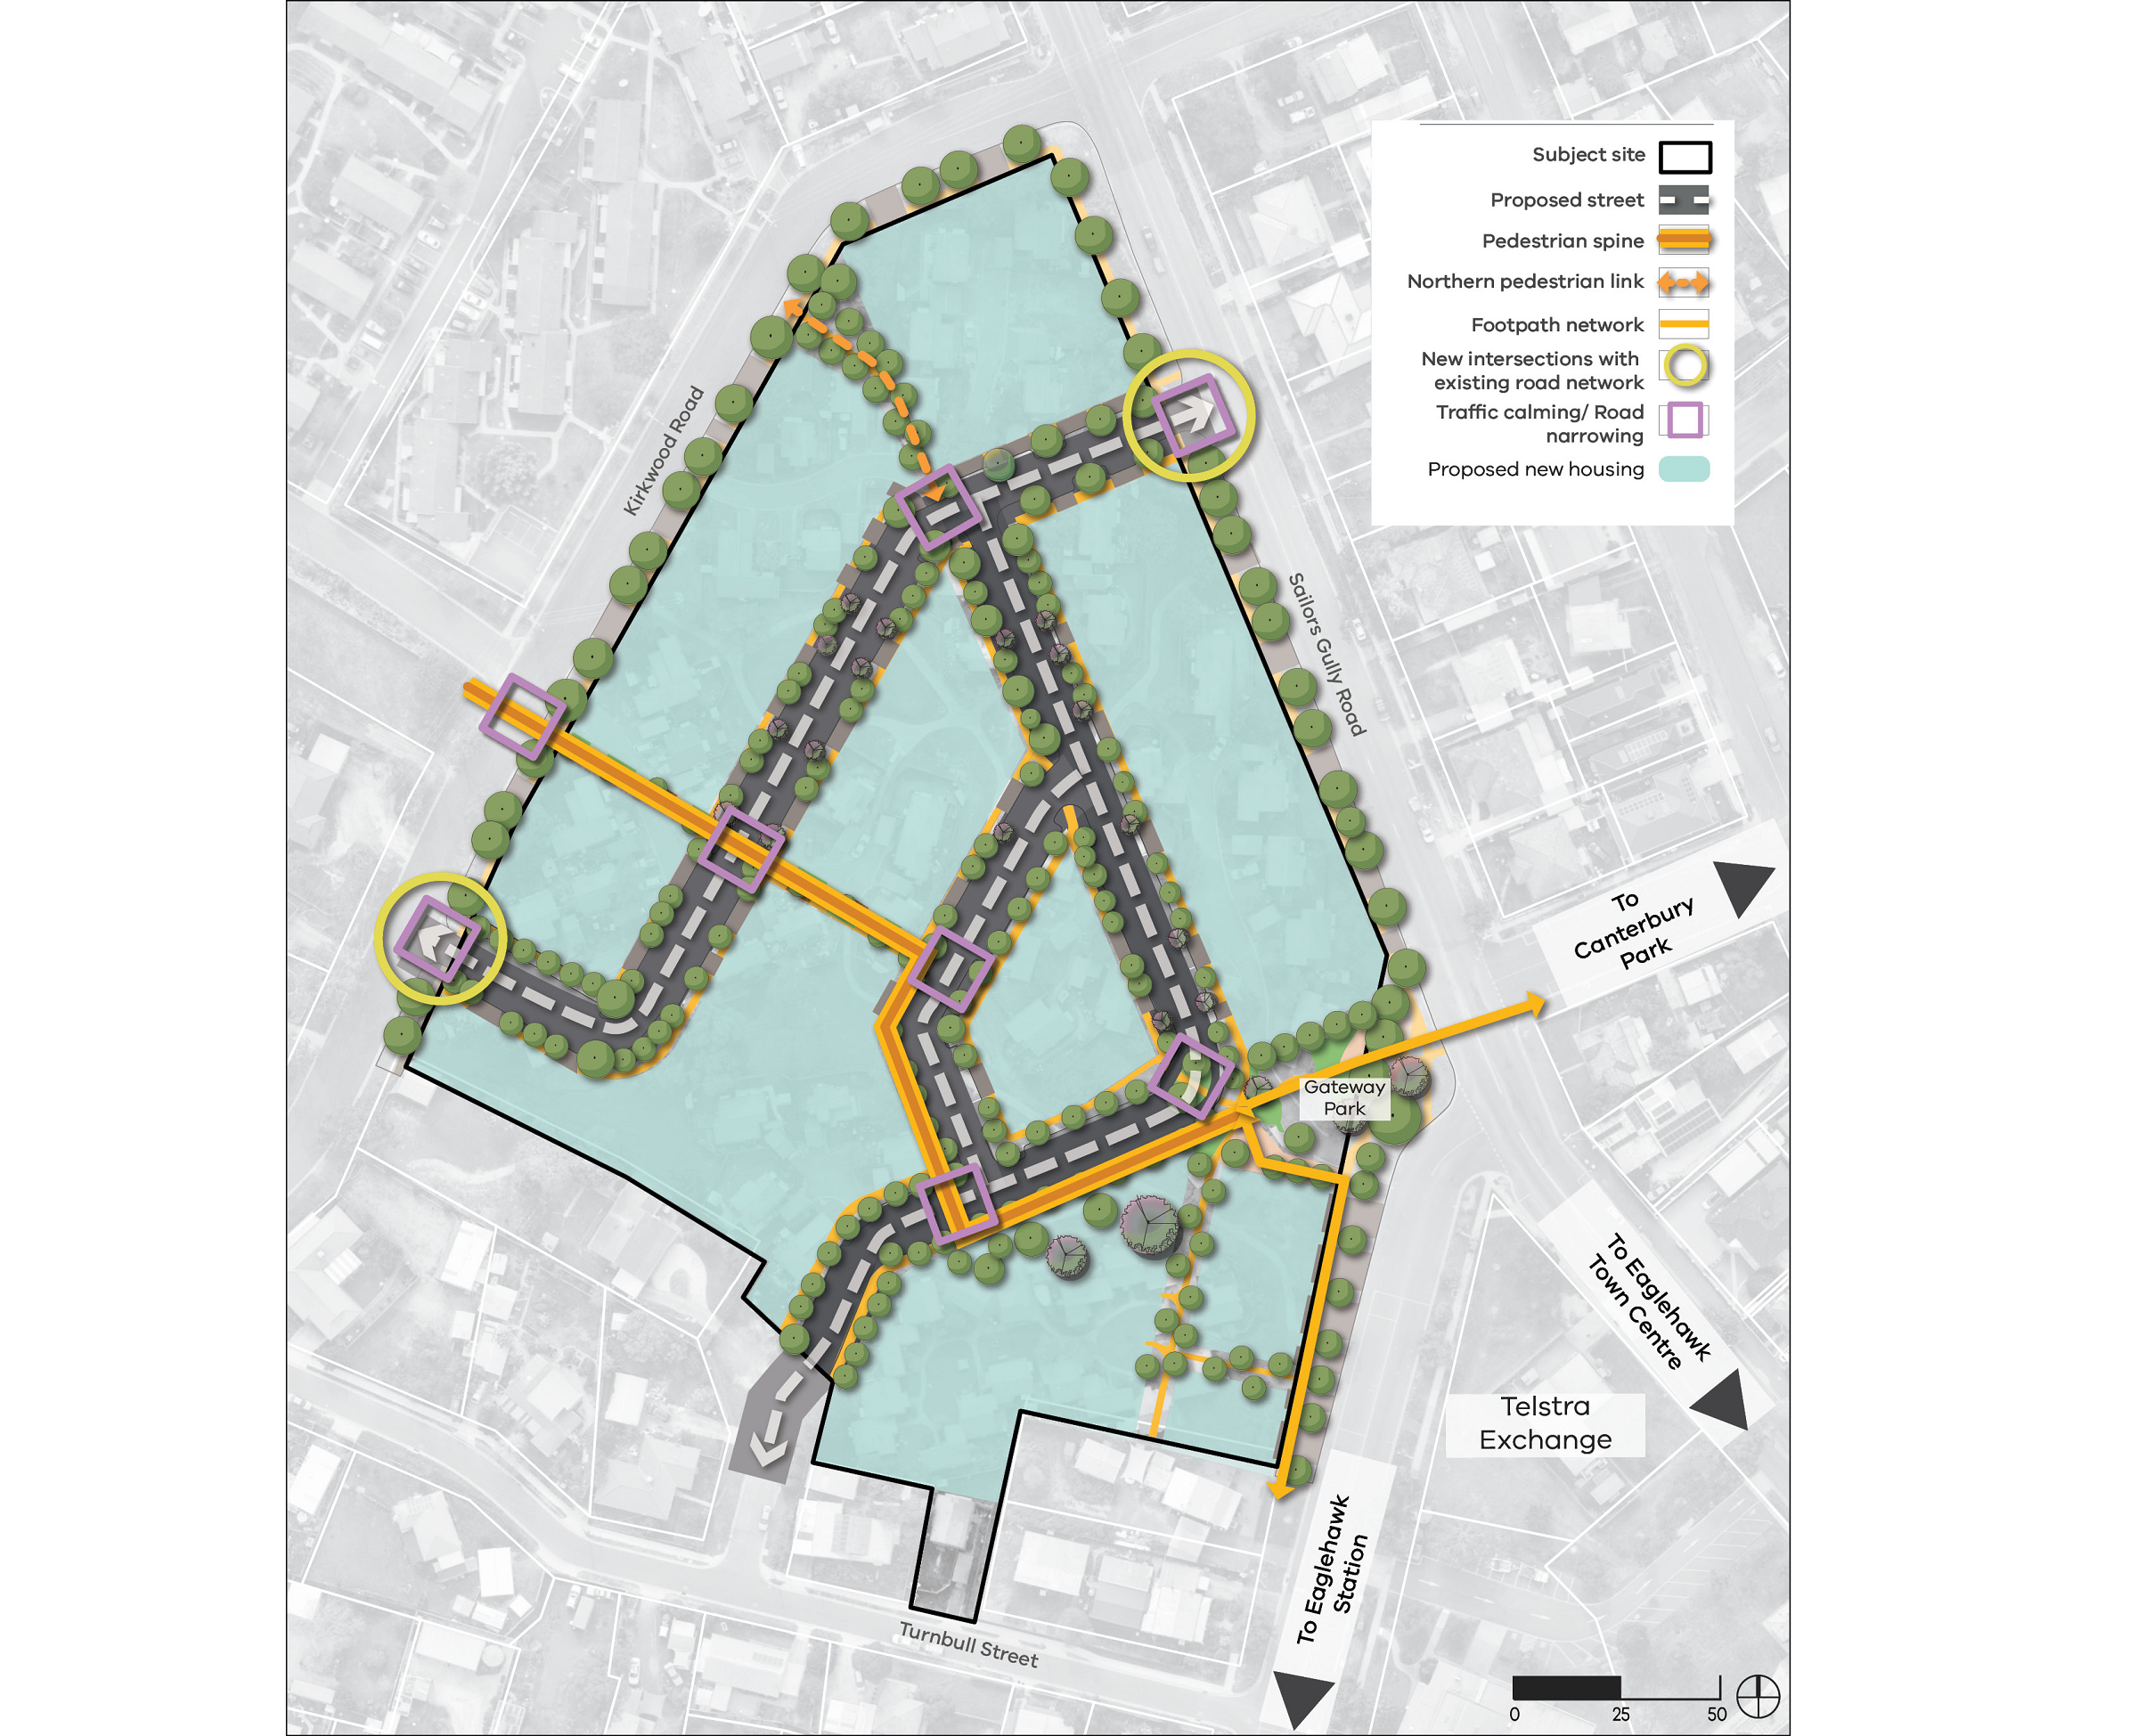 The proposed masterplan shows the subject site located between Kirkwood Road (north-west), Sailors Gully Road (east), Darling Street (south/east) and the existing housing along Turnbull Street (south). The Telstra Exchange and the road to Eaglehawk Town Centre are on the south-eastern side of the site. Existing housing on the site will remain on the east side of Sovereign Court. Future apartments are planned on the west side of Sovereign Court.  New proposed streets link Kirkwood Road, Sailors Gully Road and Sovereign Court. There are new intersections with traffic calming measures on Kirkwood Road and Sovereign Court. Five other traffic calming measures are proposed on the new street on the site. A pedestrian path runs from Kirkwood Road through the site to the proposed Gateway Park on the corner of Sailors Gully Road and Darling Street. It connects to pedestrian links with Canterbury Park (east) and Eaglehawk Station (south) A northern pedestrian link connects the roads through the site from Kirkwood Road to Darling Street. Trees align the proposed street and the site boundaries along Kirkwood Road, Sailors Gully Road and Darling Street.